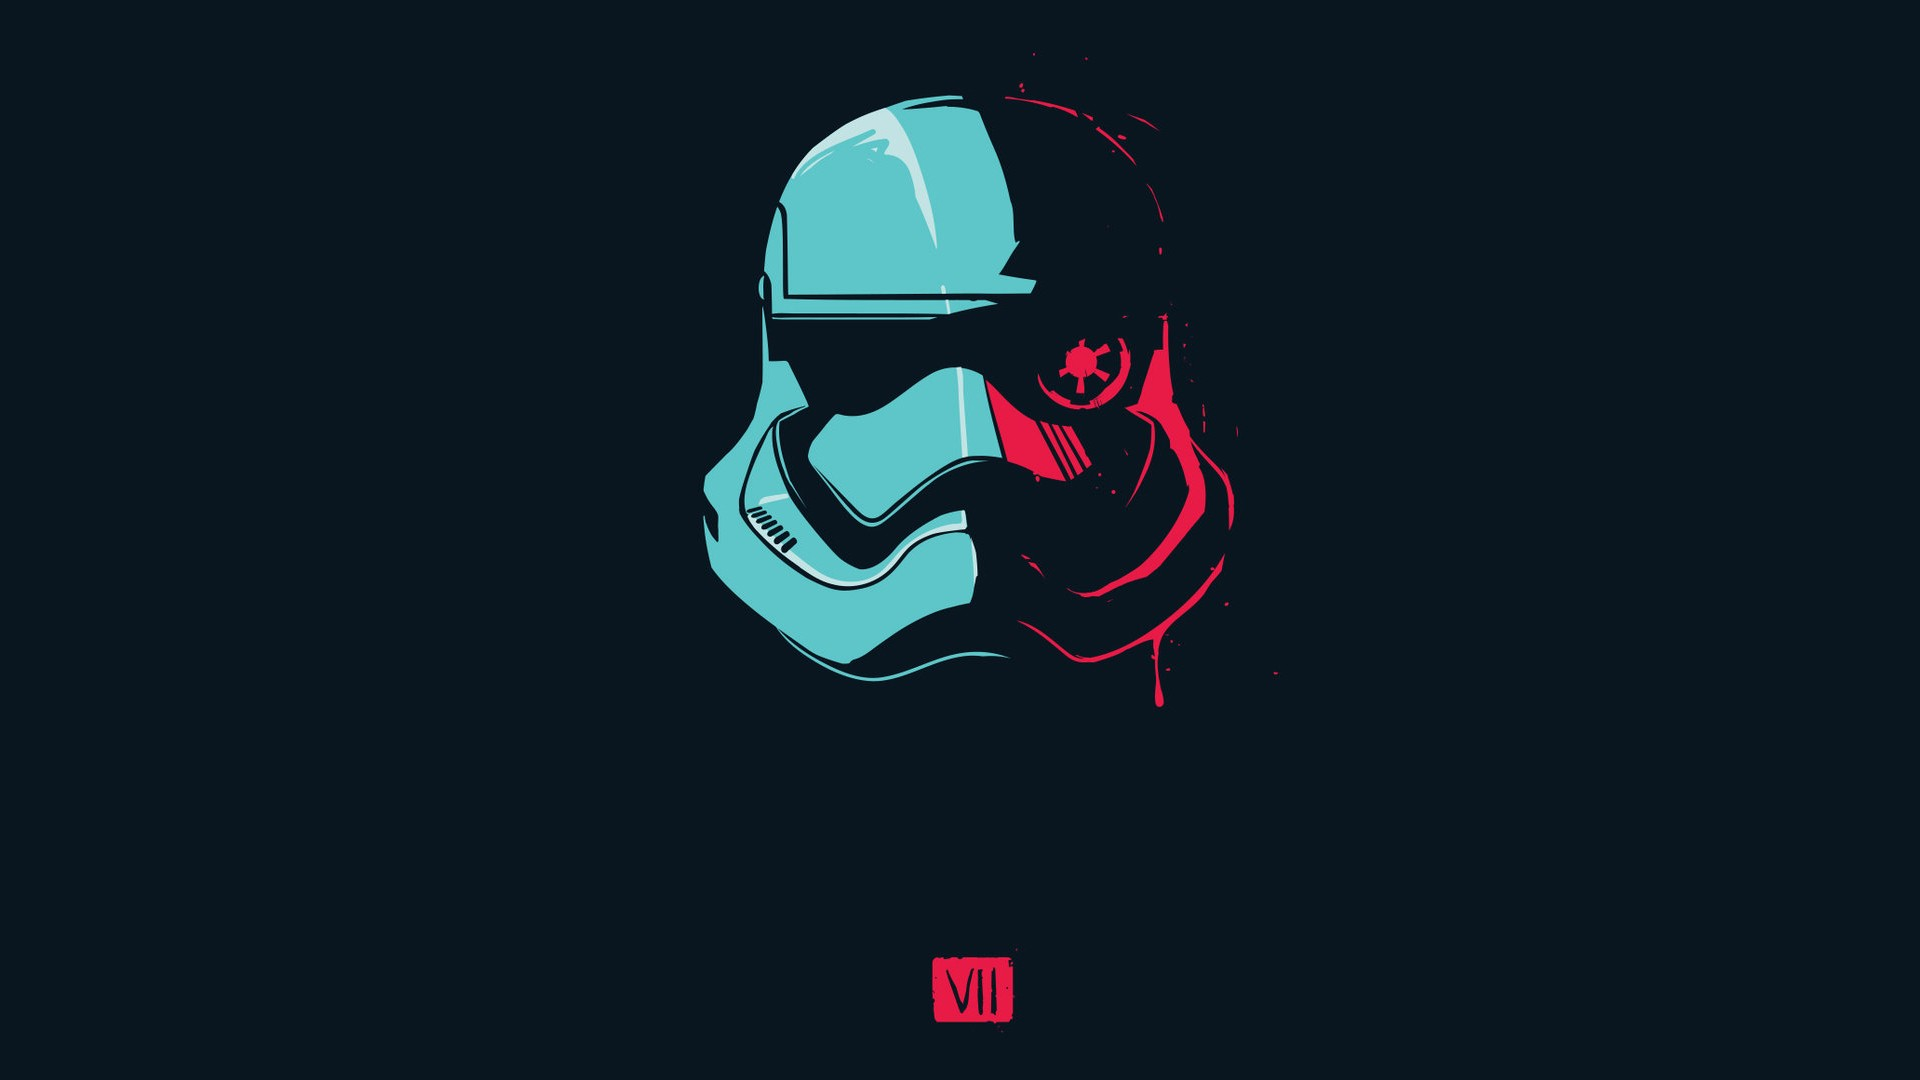 Free Download Star Wars Episode Vii The Force Awakens Wallpapers